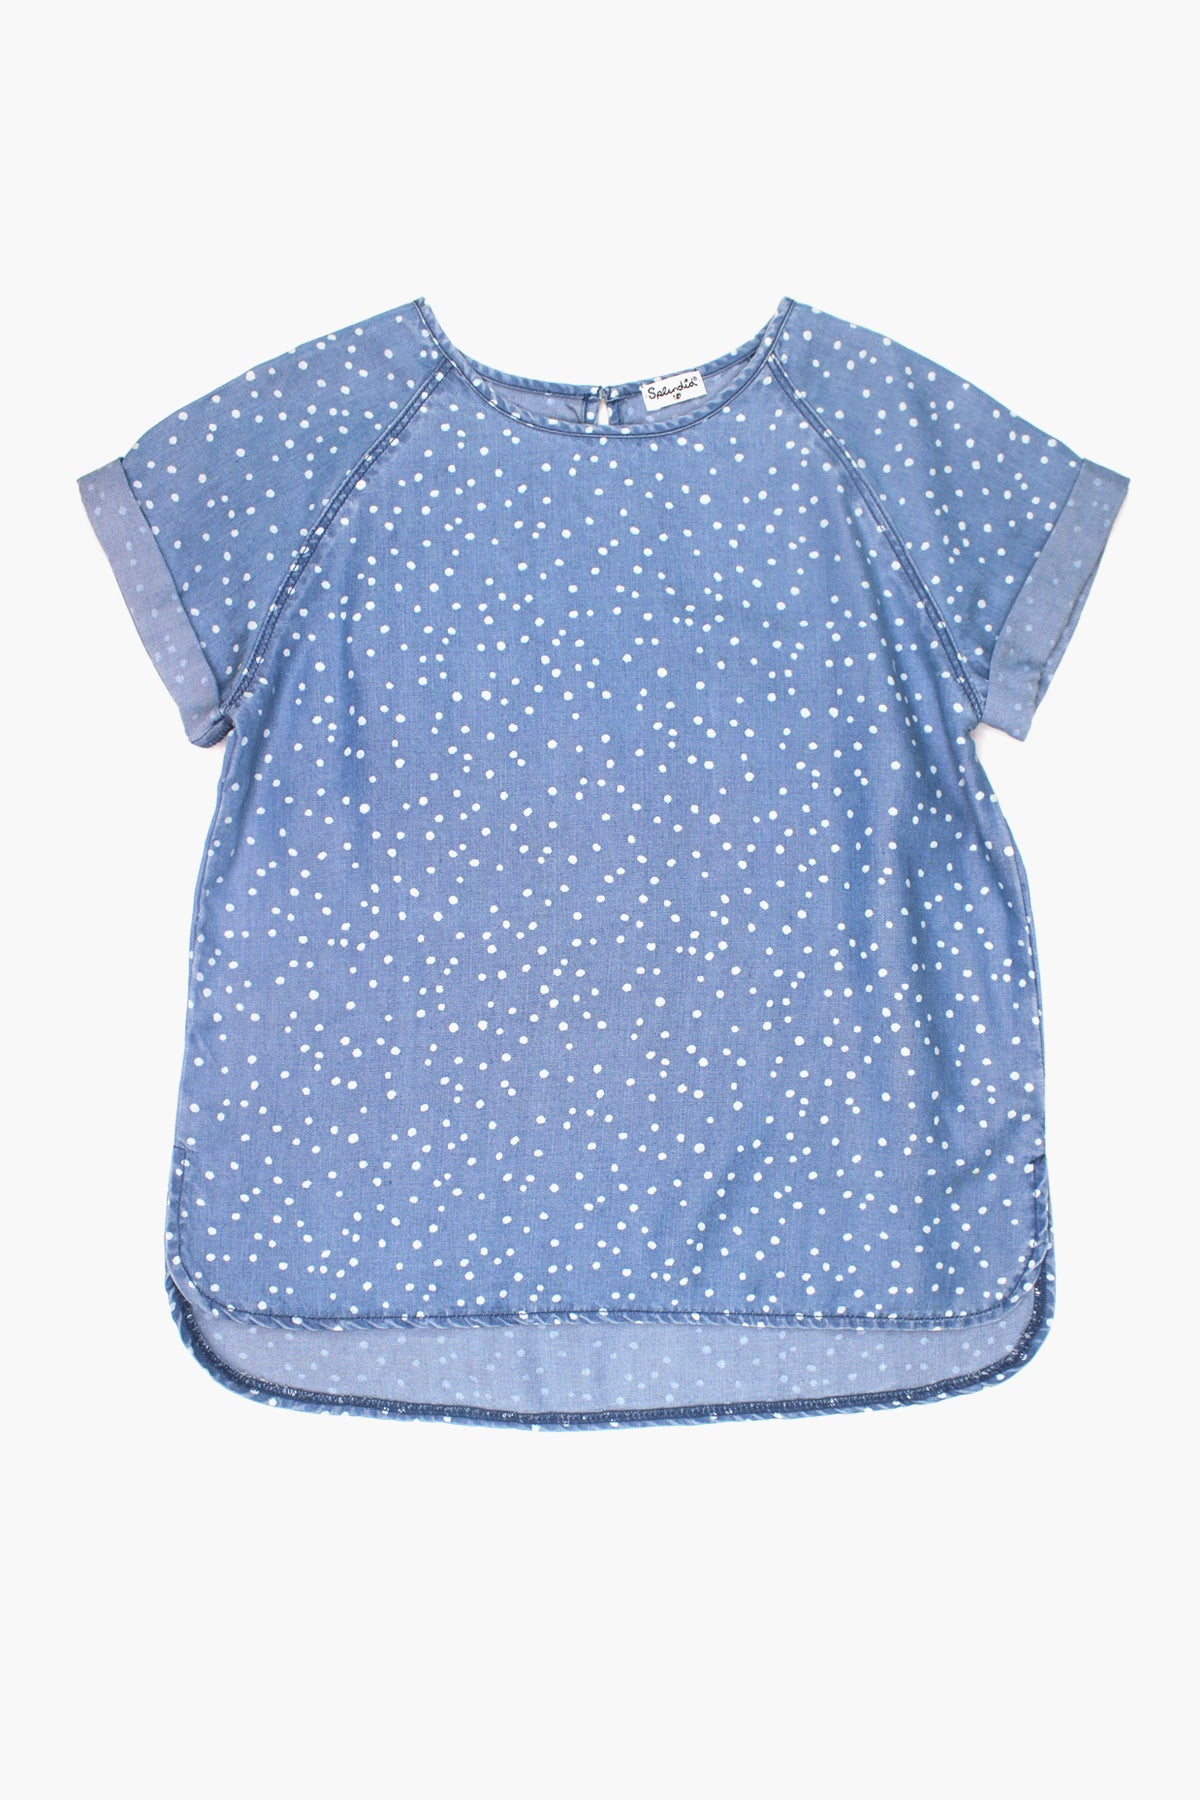 Splendid Chambray Dot Girls Top